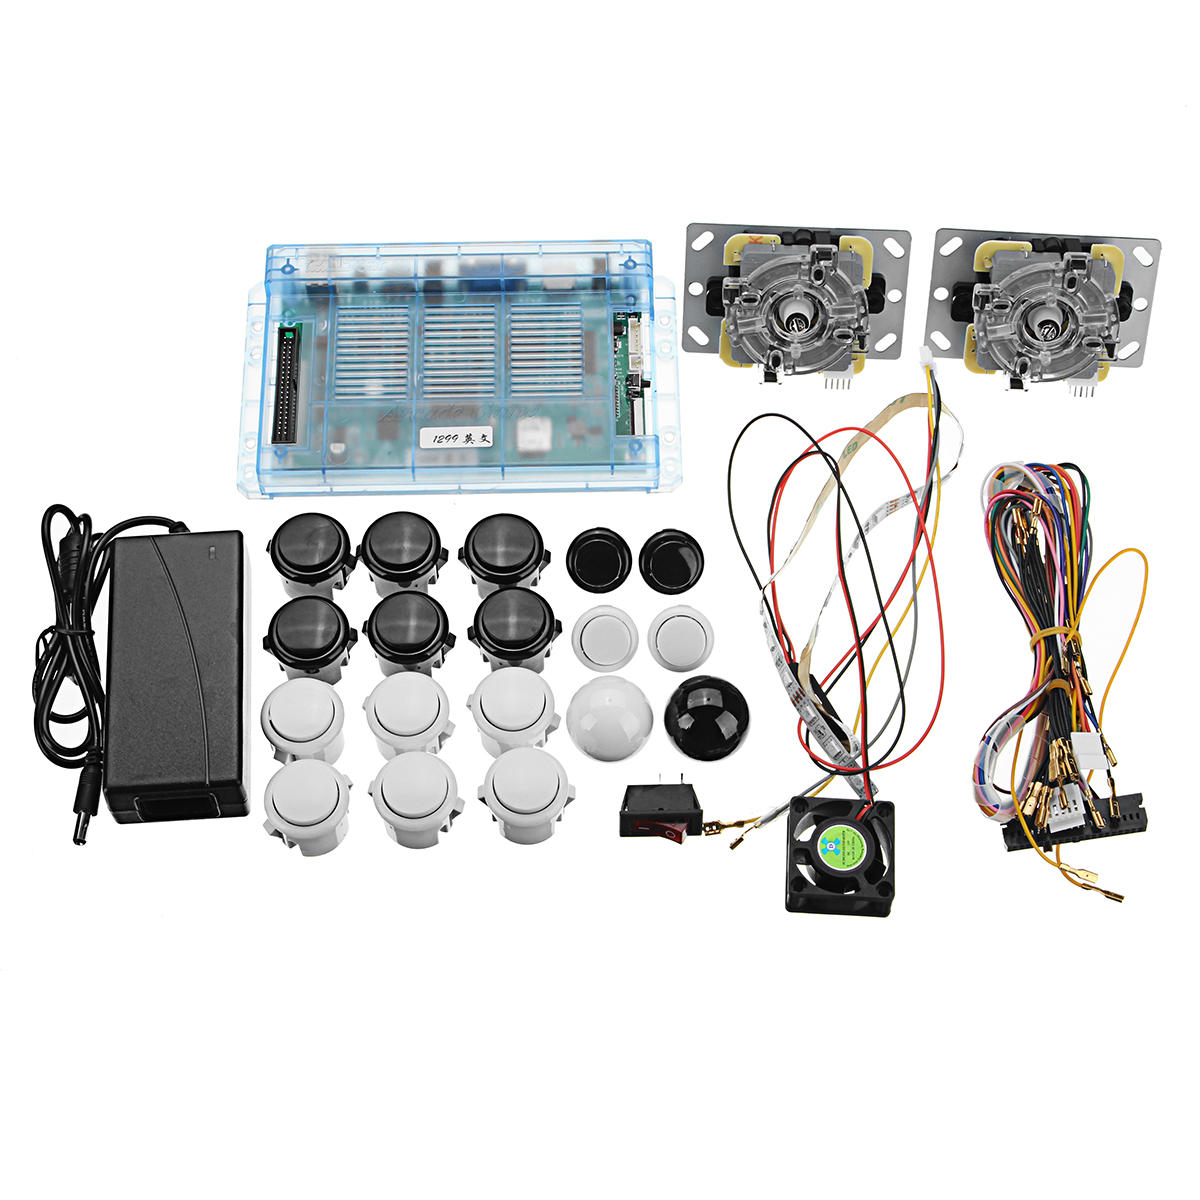 1299 em 1 dual mother board push button kit para Pandora's Box 5S consola de jogos de arcada diy